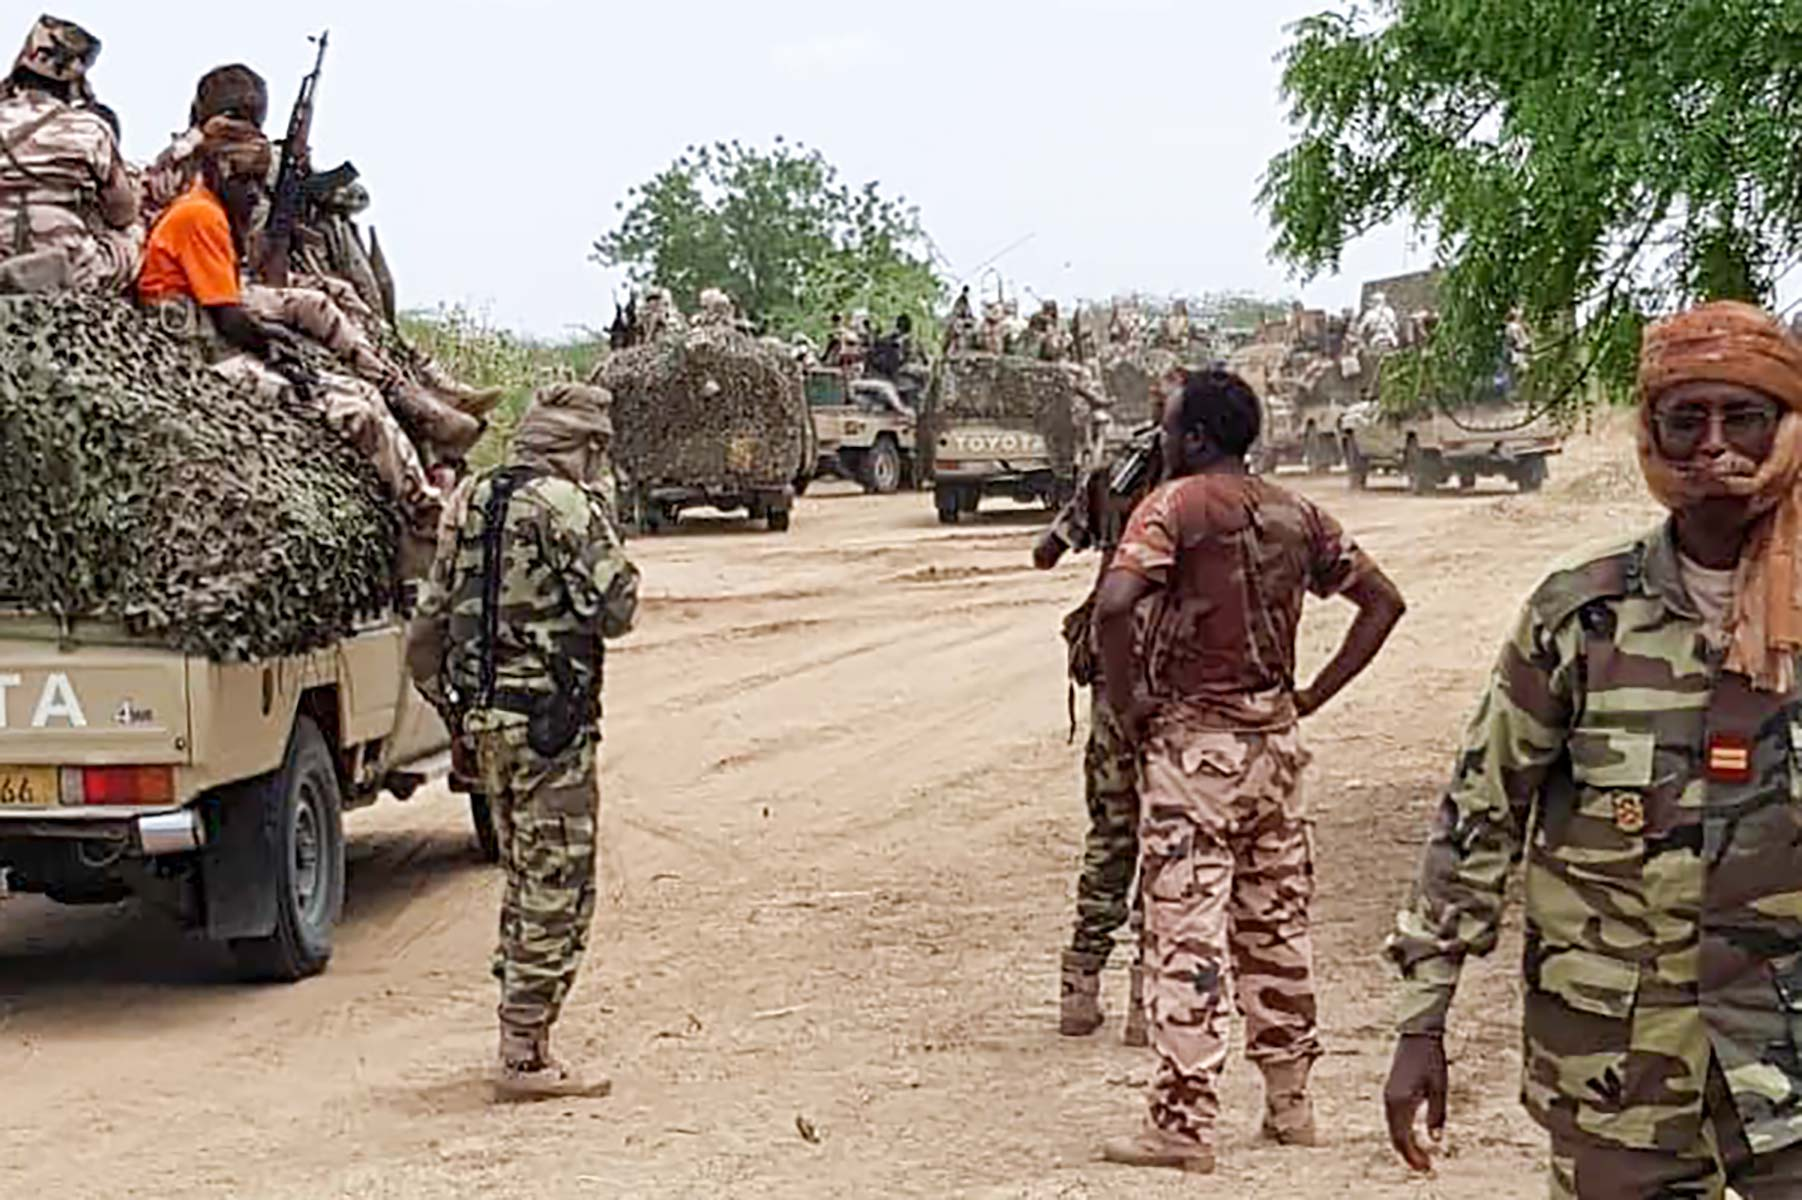 Chad troops leave Nigeria with Boko Haram mission 'finished'